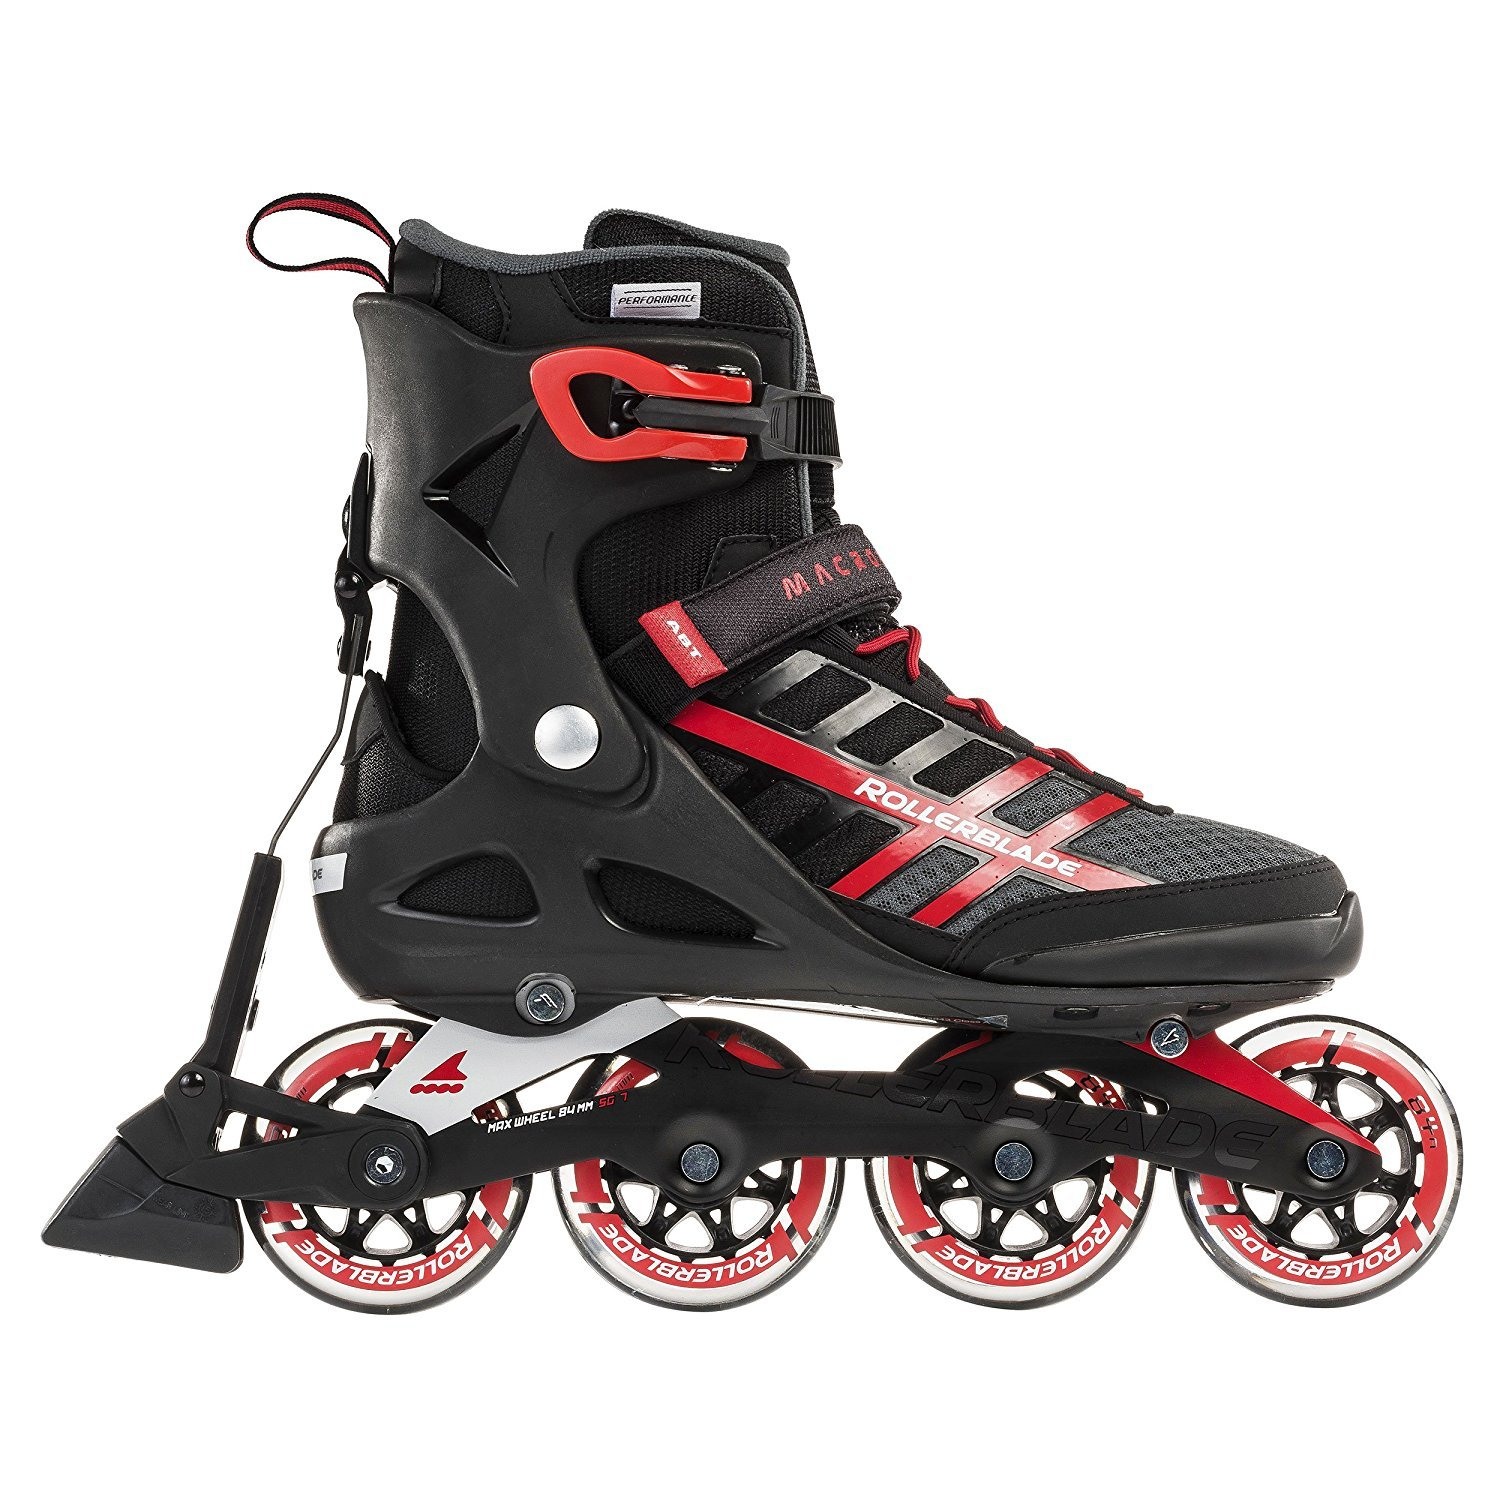 Rollerblade Macroblade 84 ABT New SG7 Bearings Aluminum Frame Inline Skates, Black/Red, US Men's 11 by Rollerblade